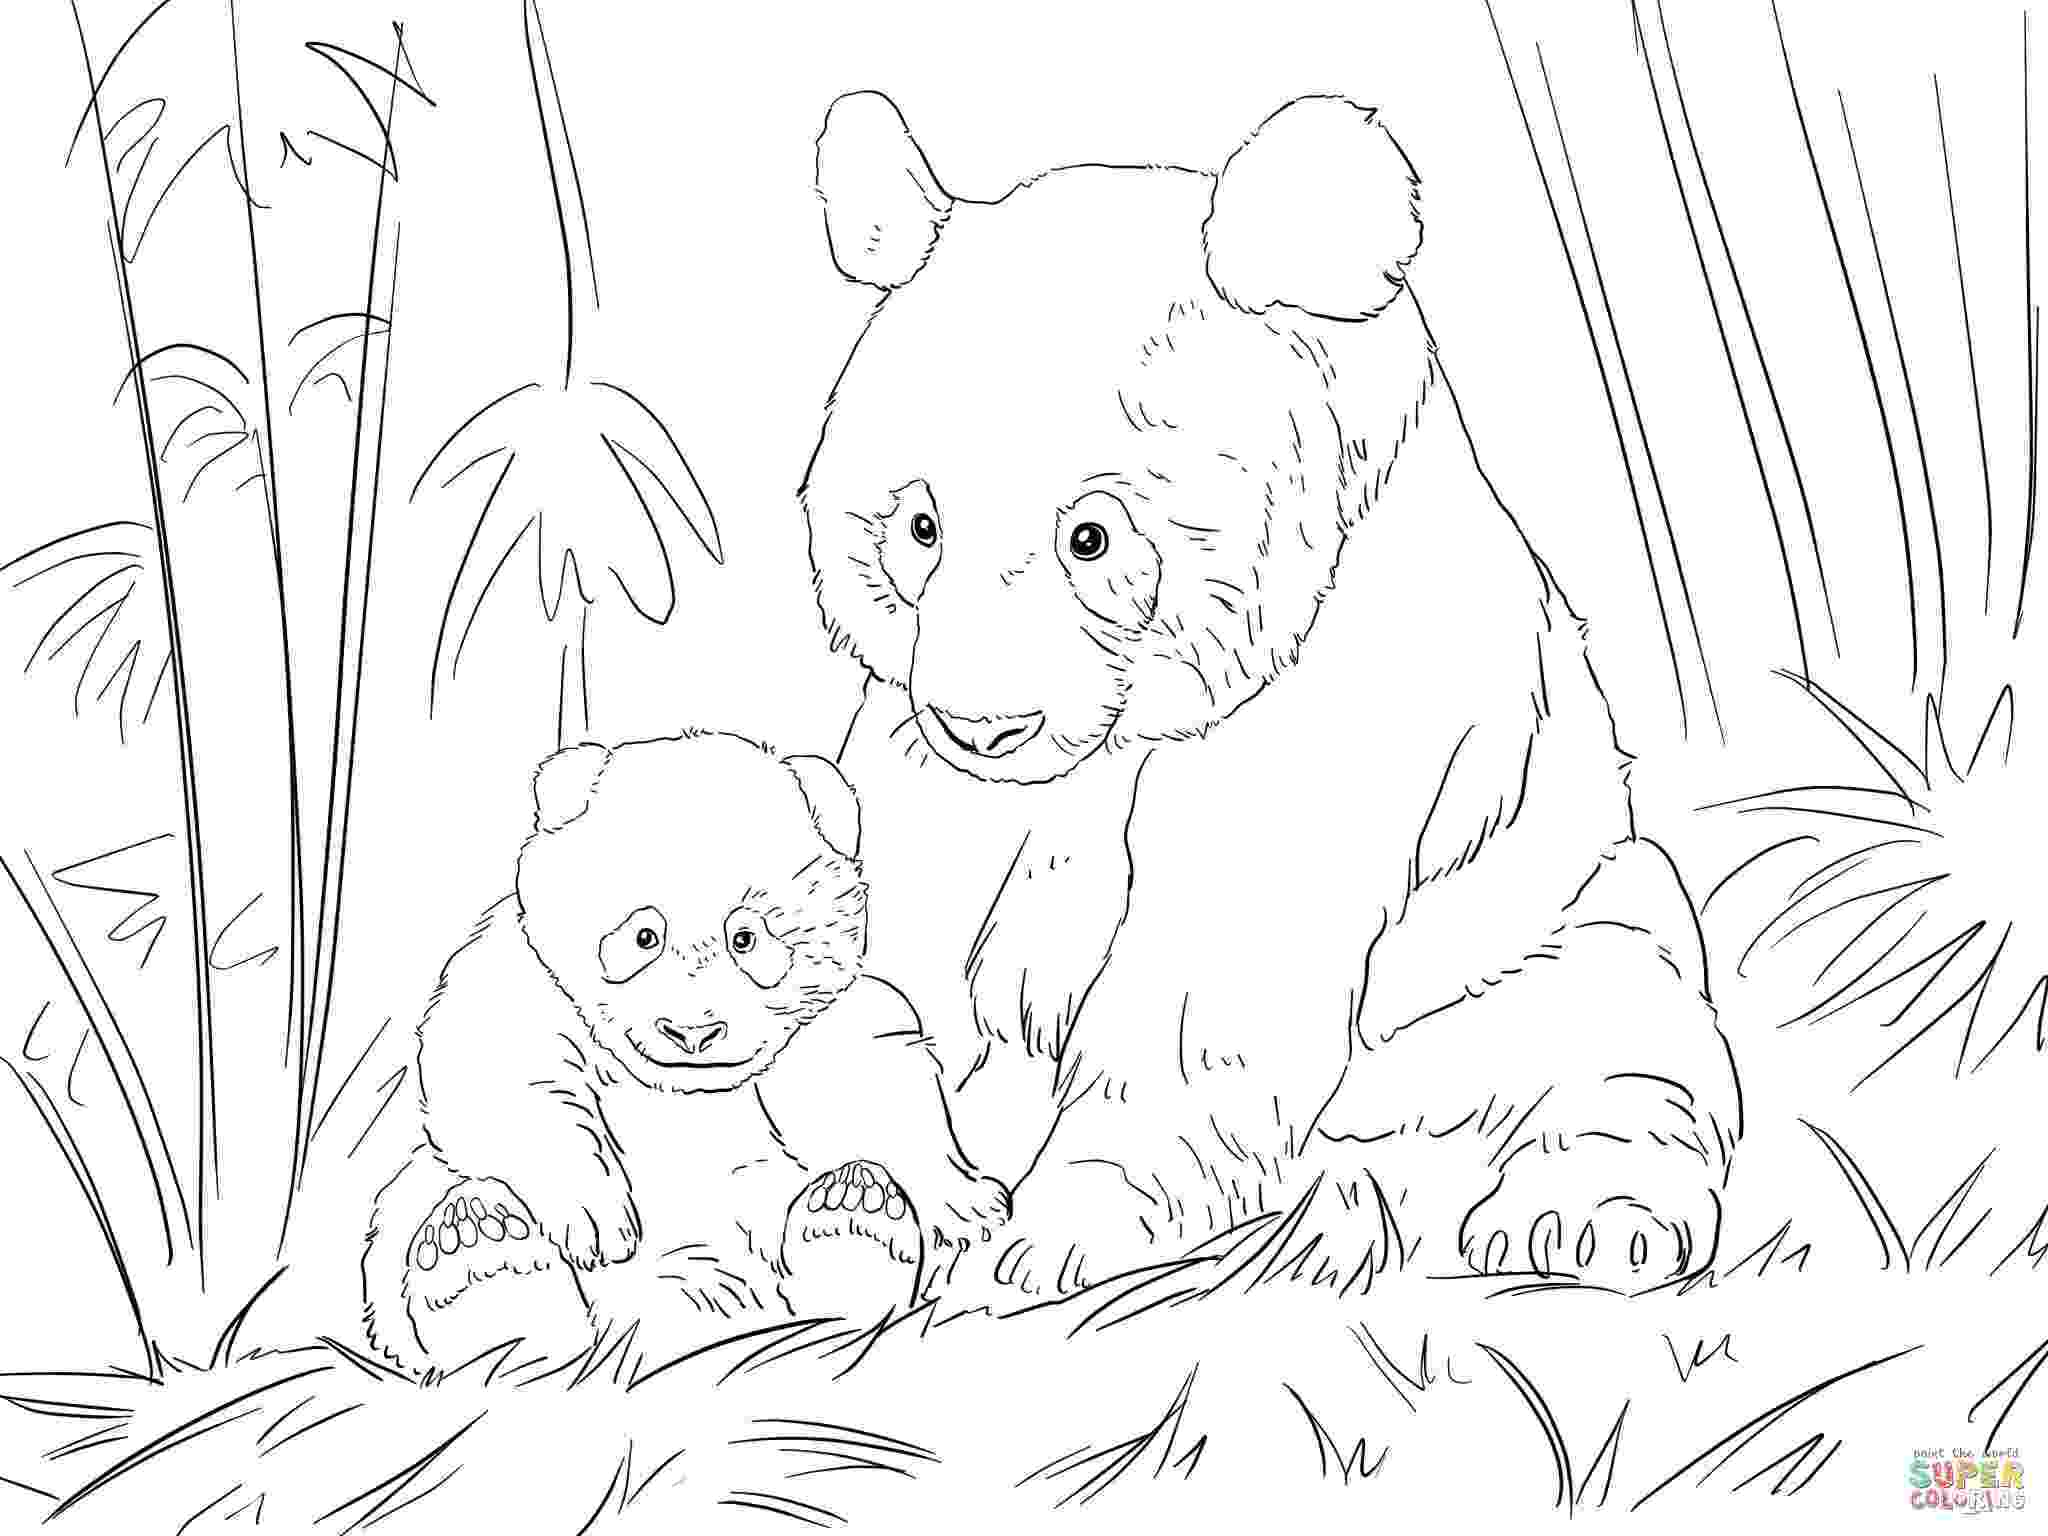 panda bear coloring pictures 18 best mom and baby animal coloring pages images on pinterest bear pictures panda coloring